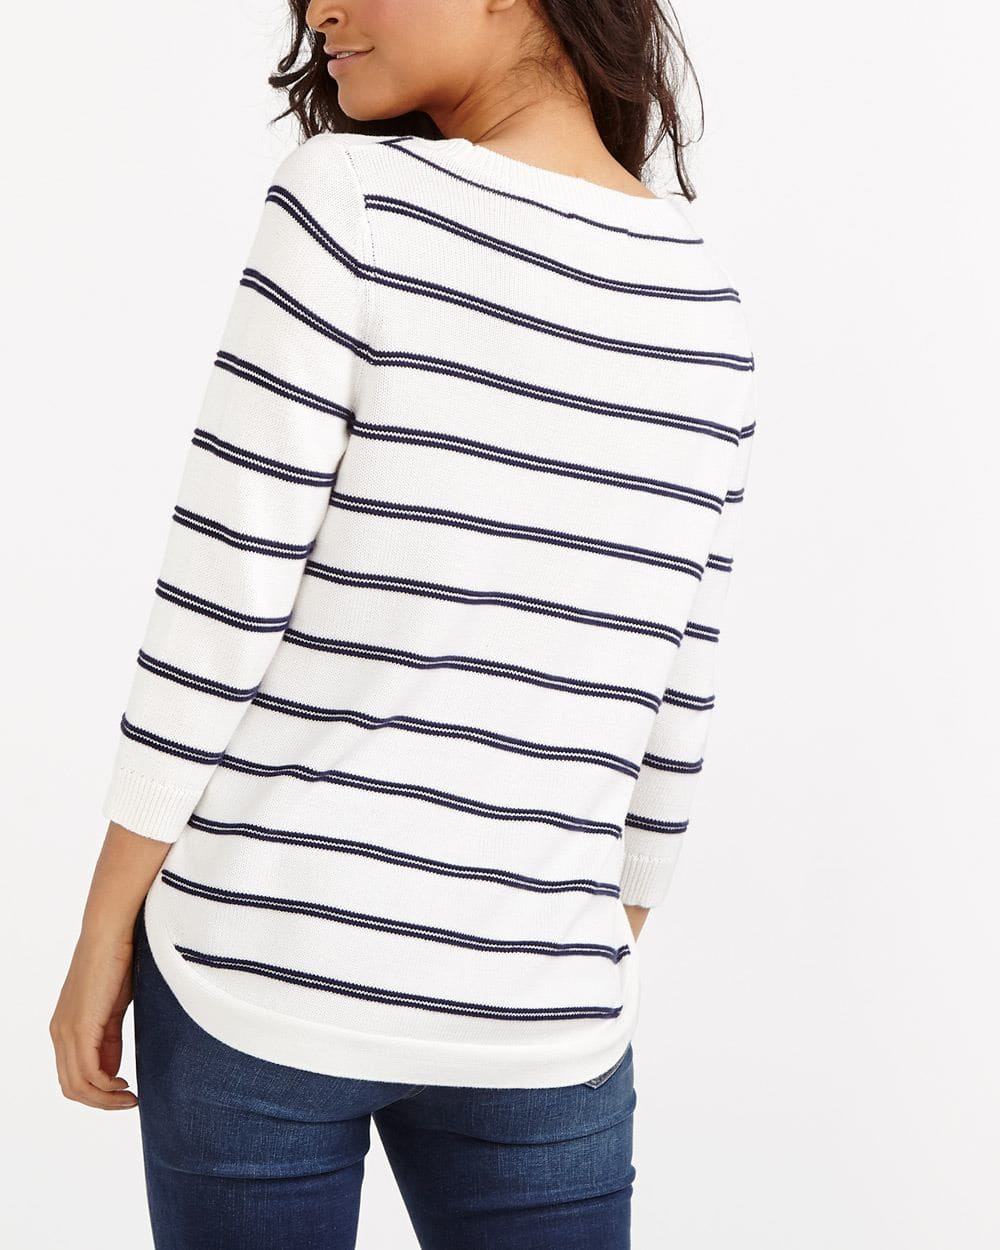 ¾ Sleeve Rounded Hem Sweater